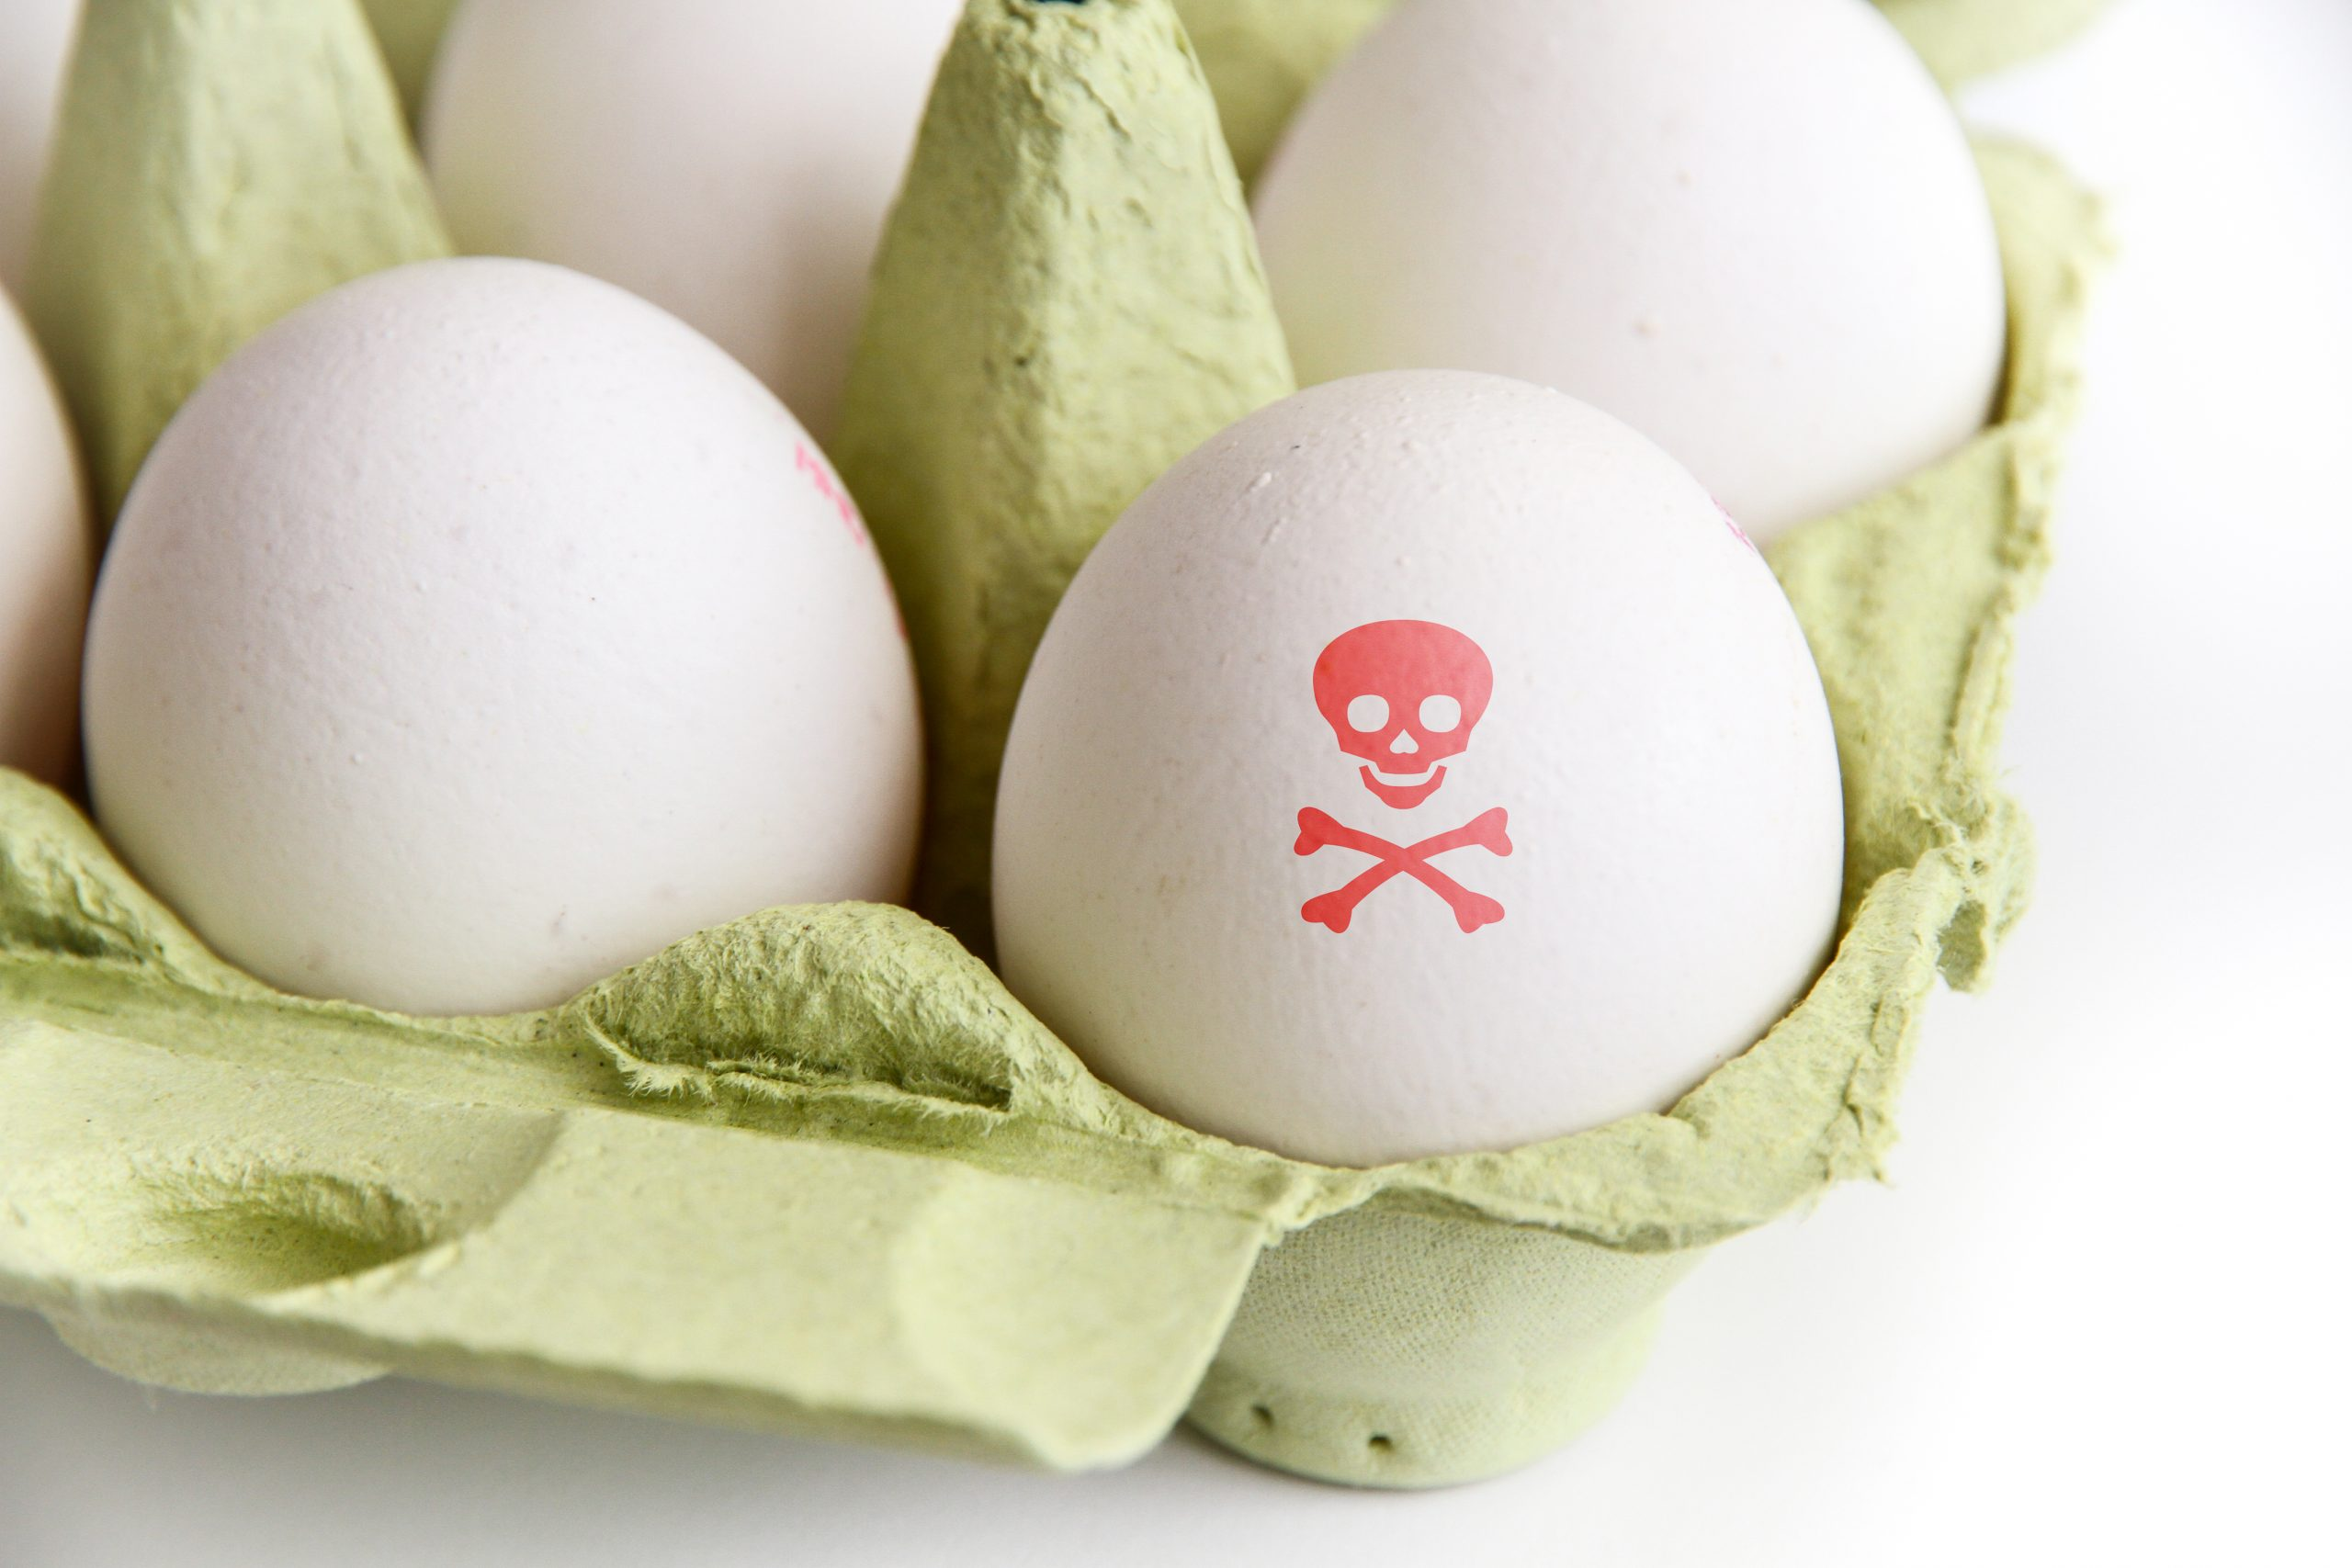 Food Fraud, Food Defense and X-ray Inspection